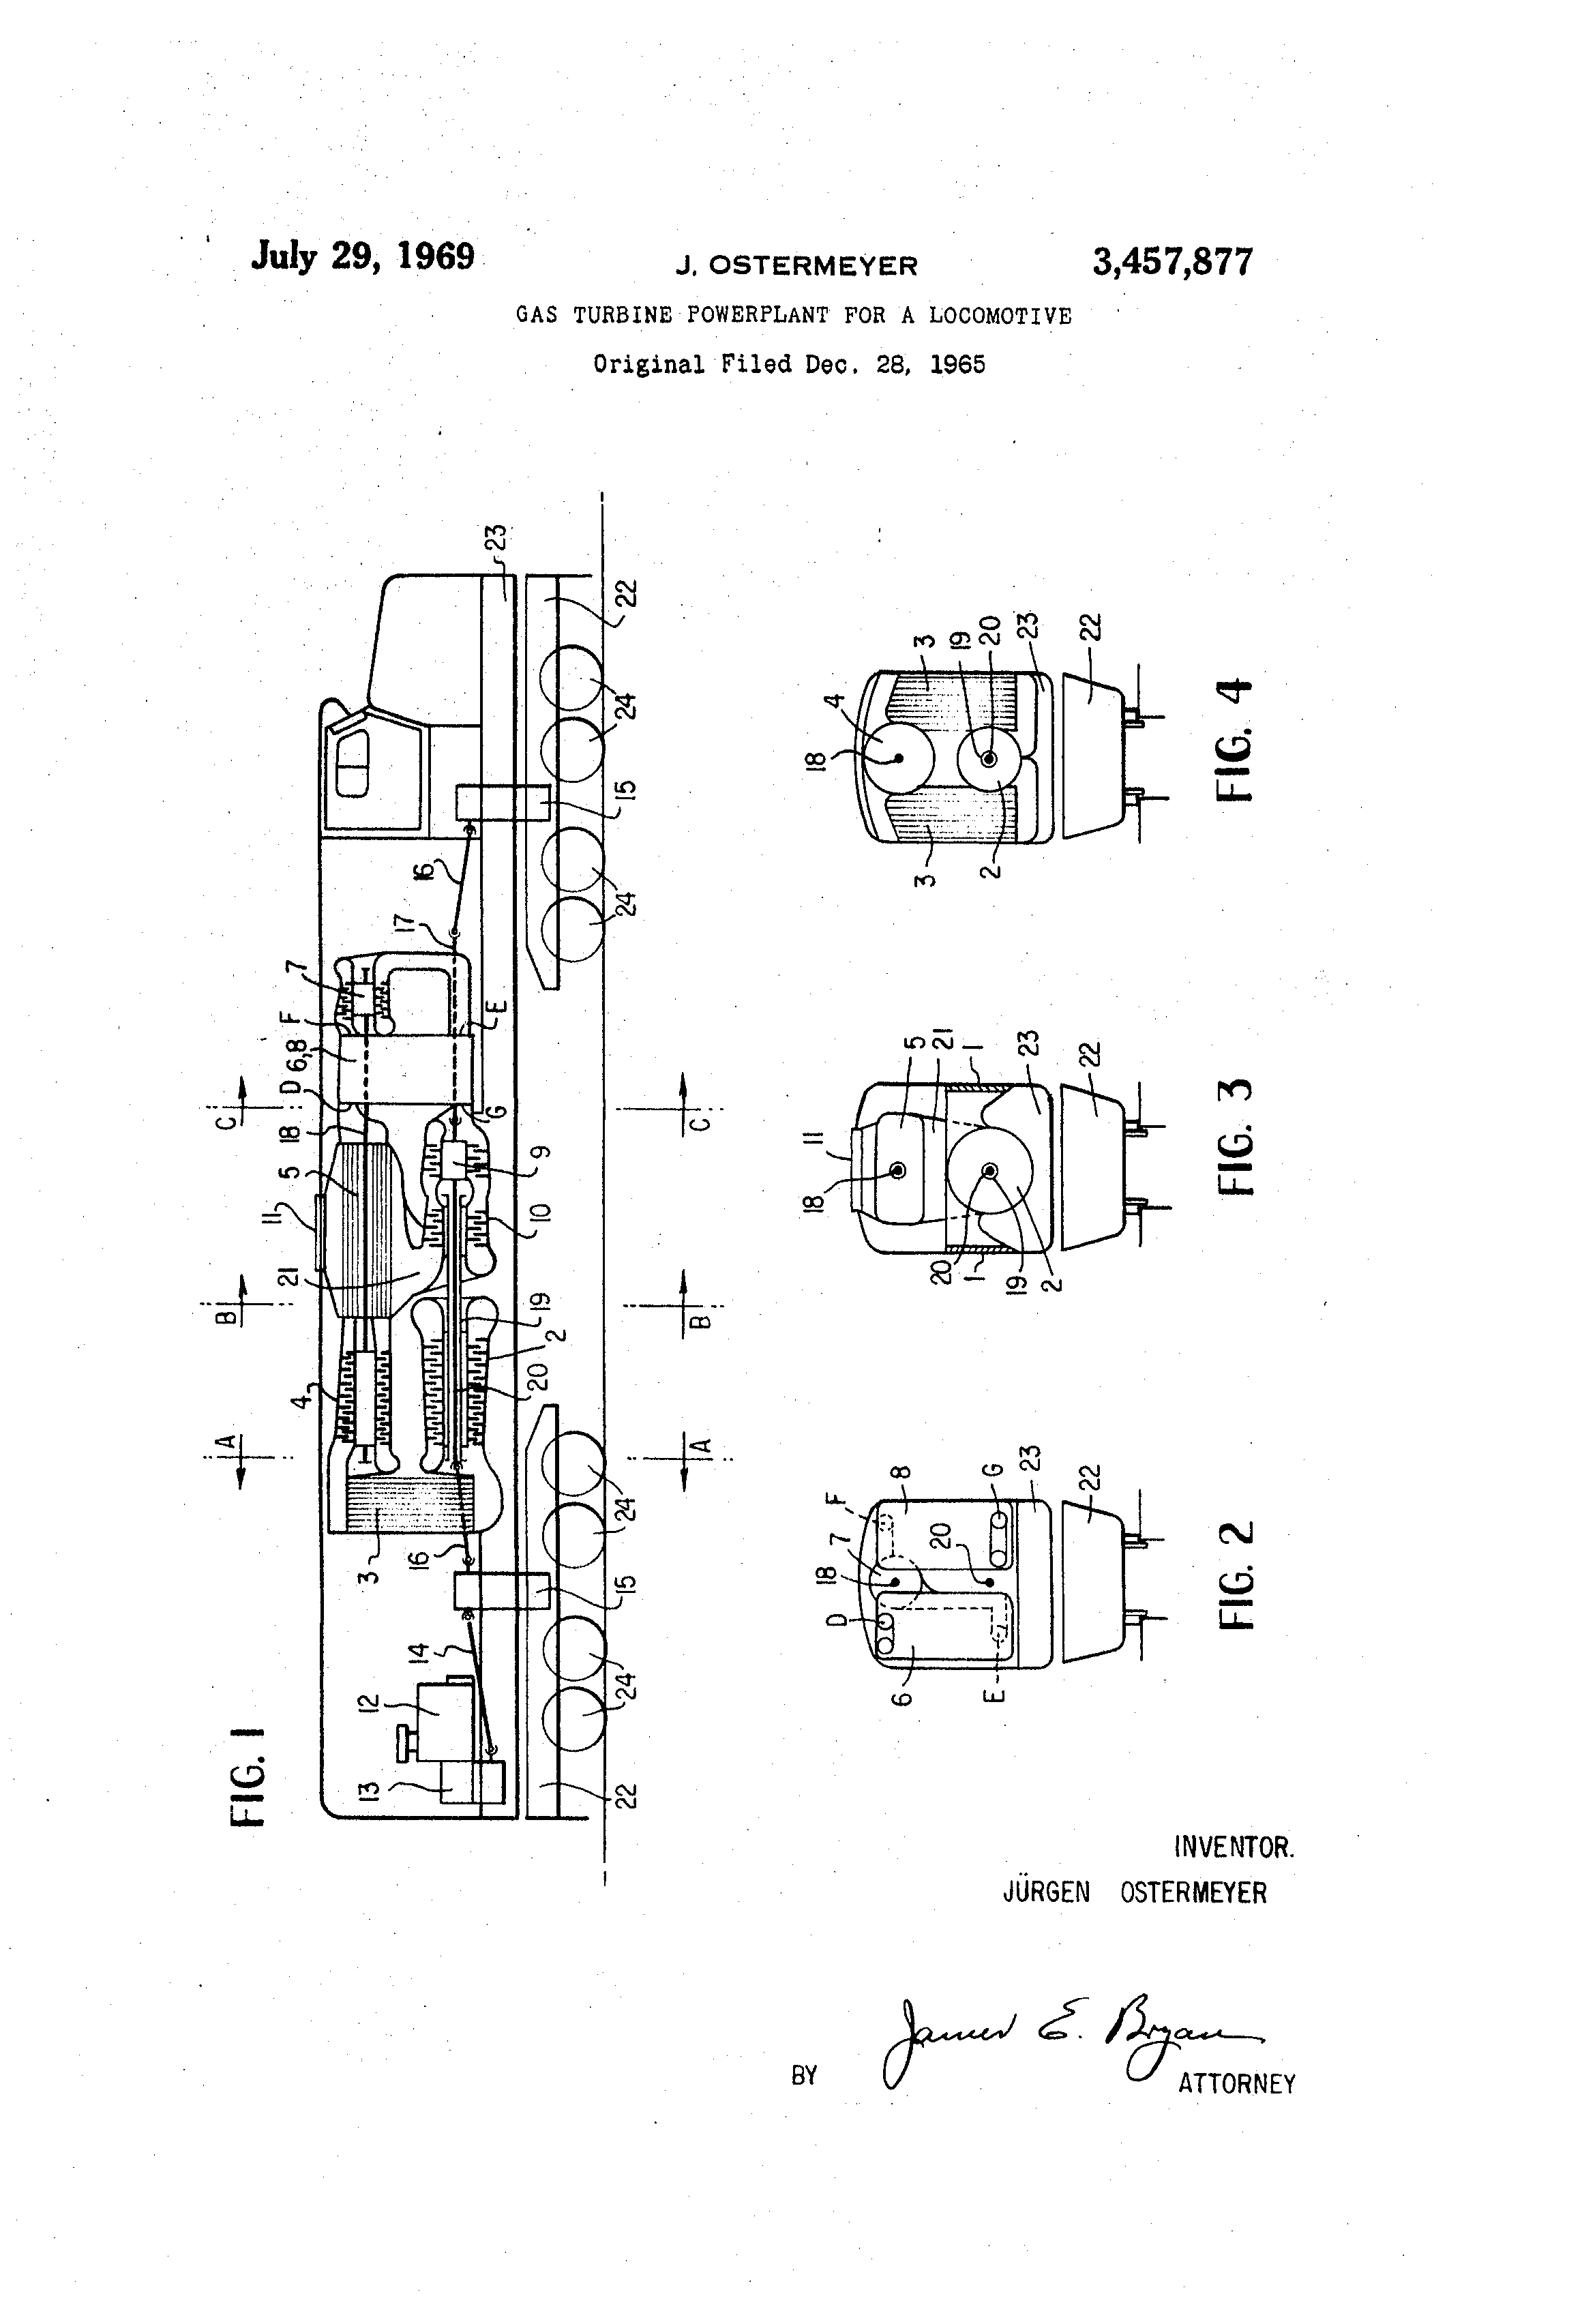 Patent US Gas turbine powerplant for a lo otive